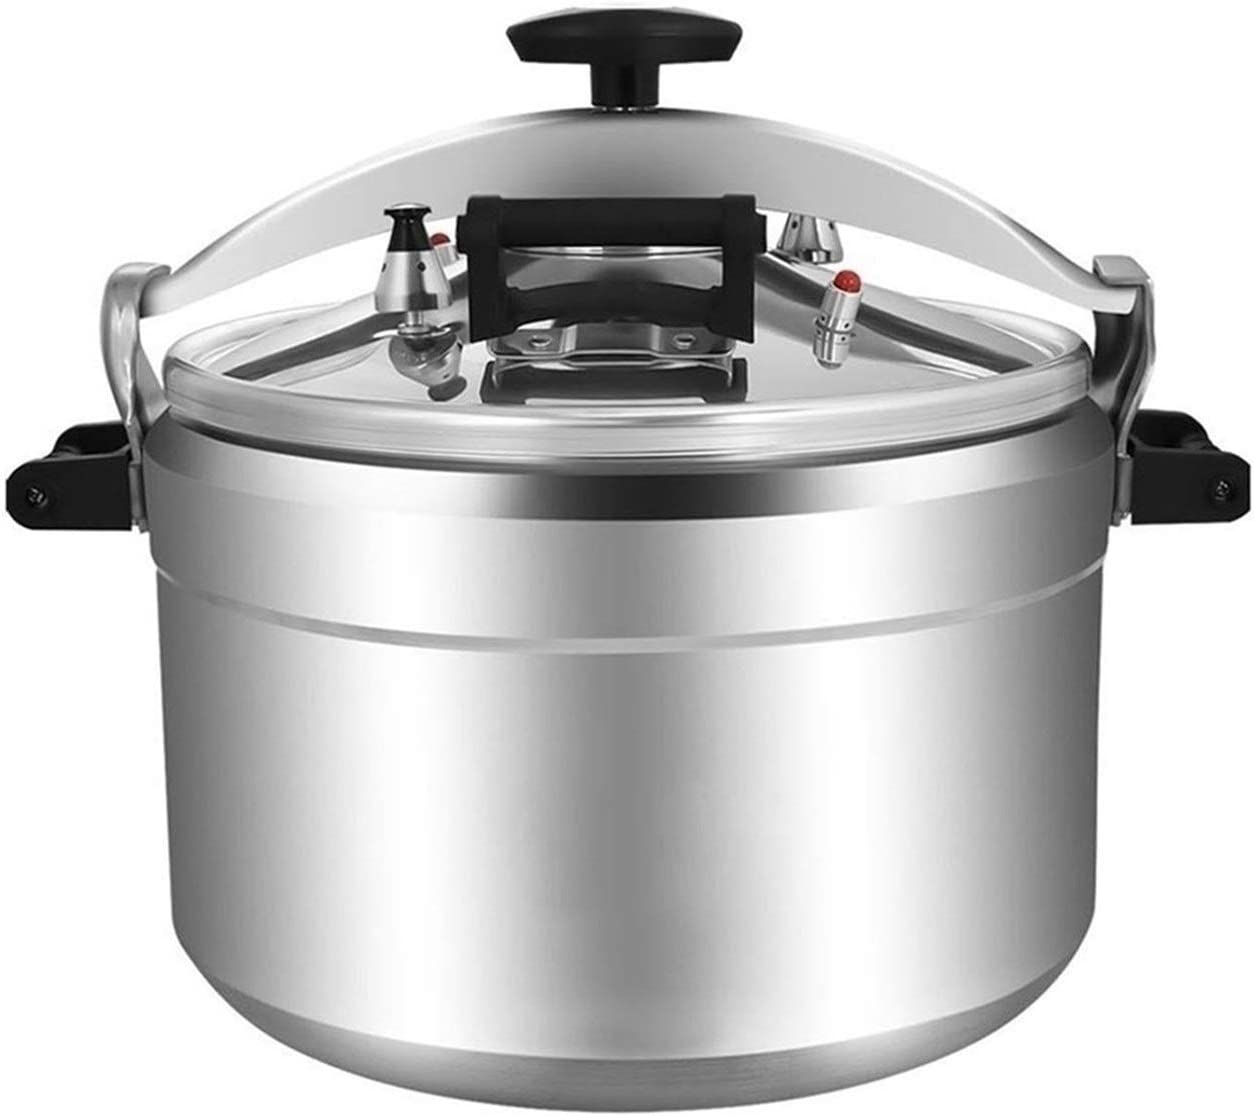 Commercial pressure cooker aluminum household multi-function explosion-proof pressure cooker non-stick cooker gas stove induction cooker soup pot 9L~60L (Color : Silver, Size : 60L)